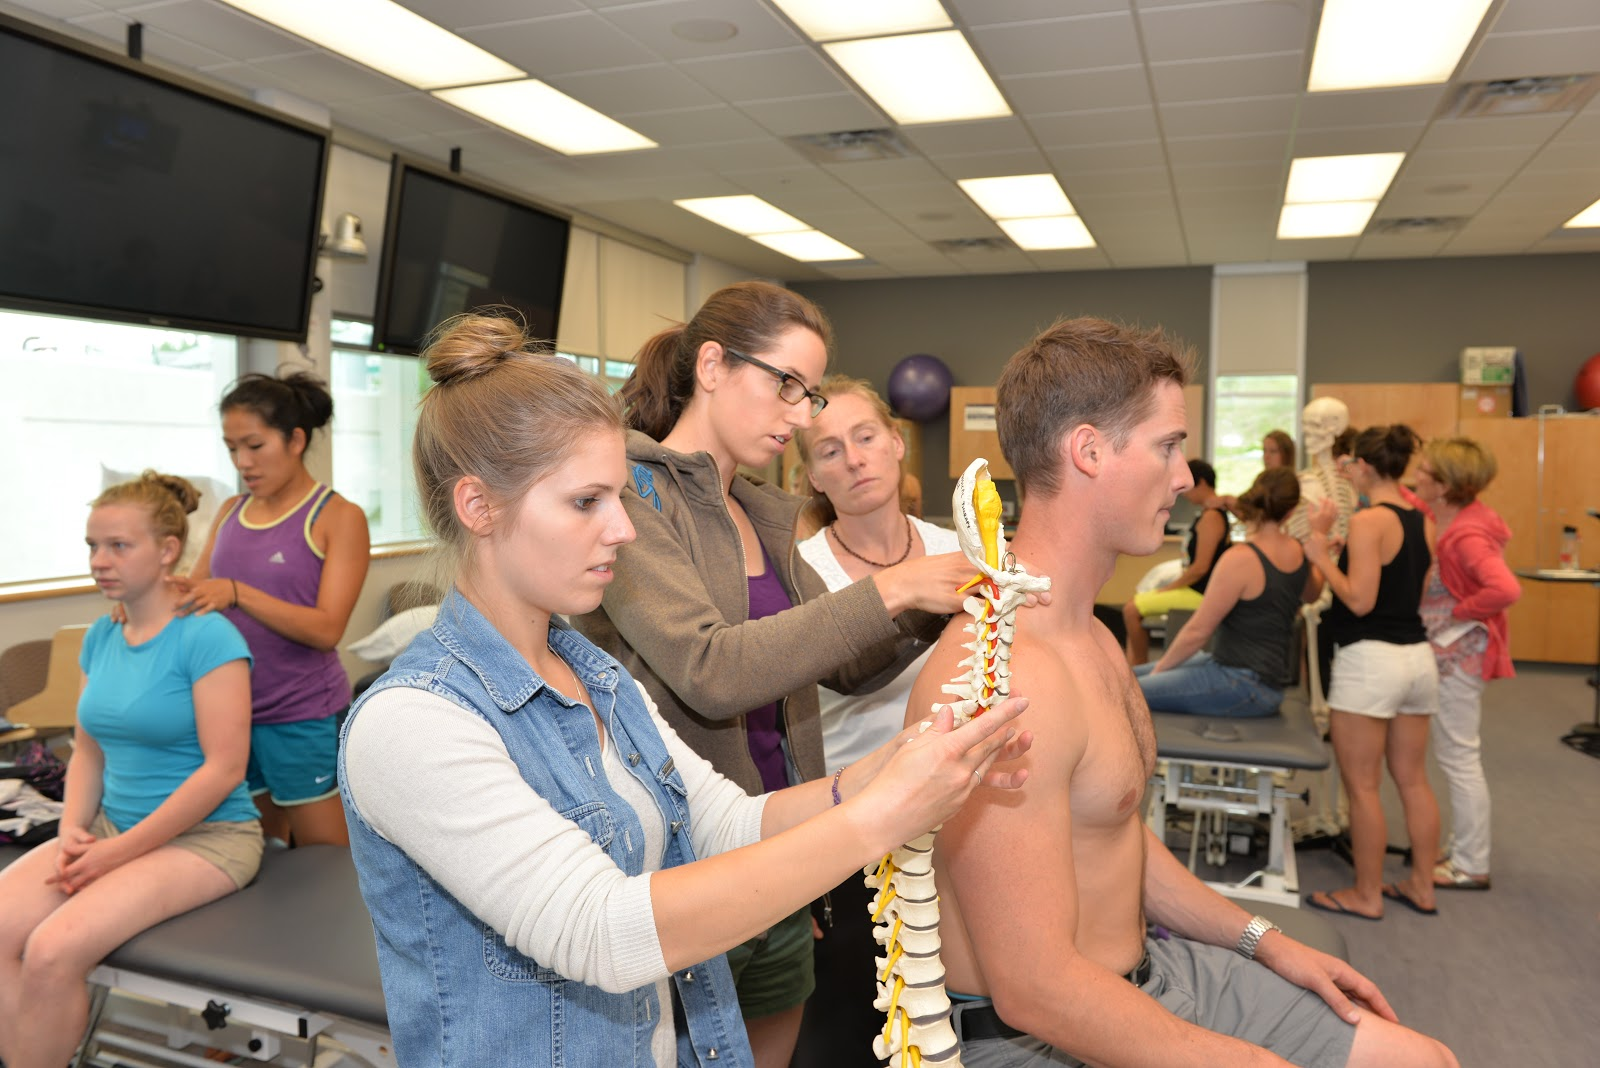 College courses for physical therapy - The College Provides Physically Sounded Doctoral Level Courses Physician Level Assistant Programs As Well As Anything Else That Has Been Established By One